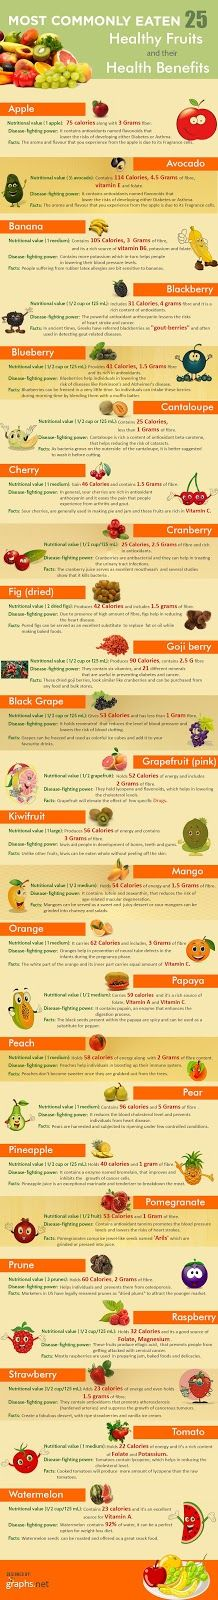 25 Common Fruits and Their Health Benefits Infographic from Graphs.net